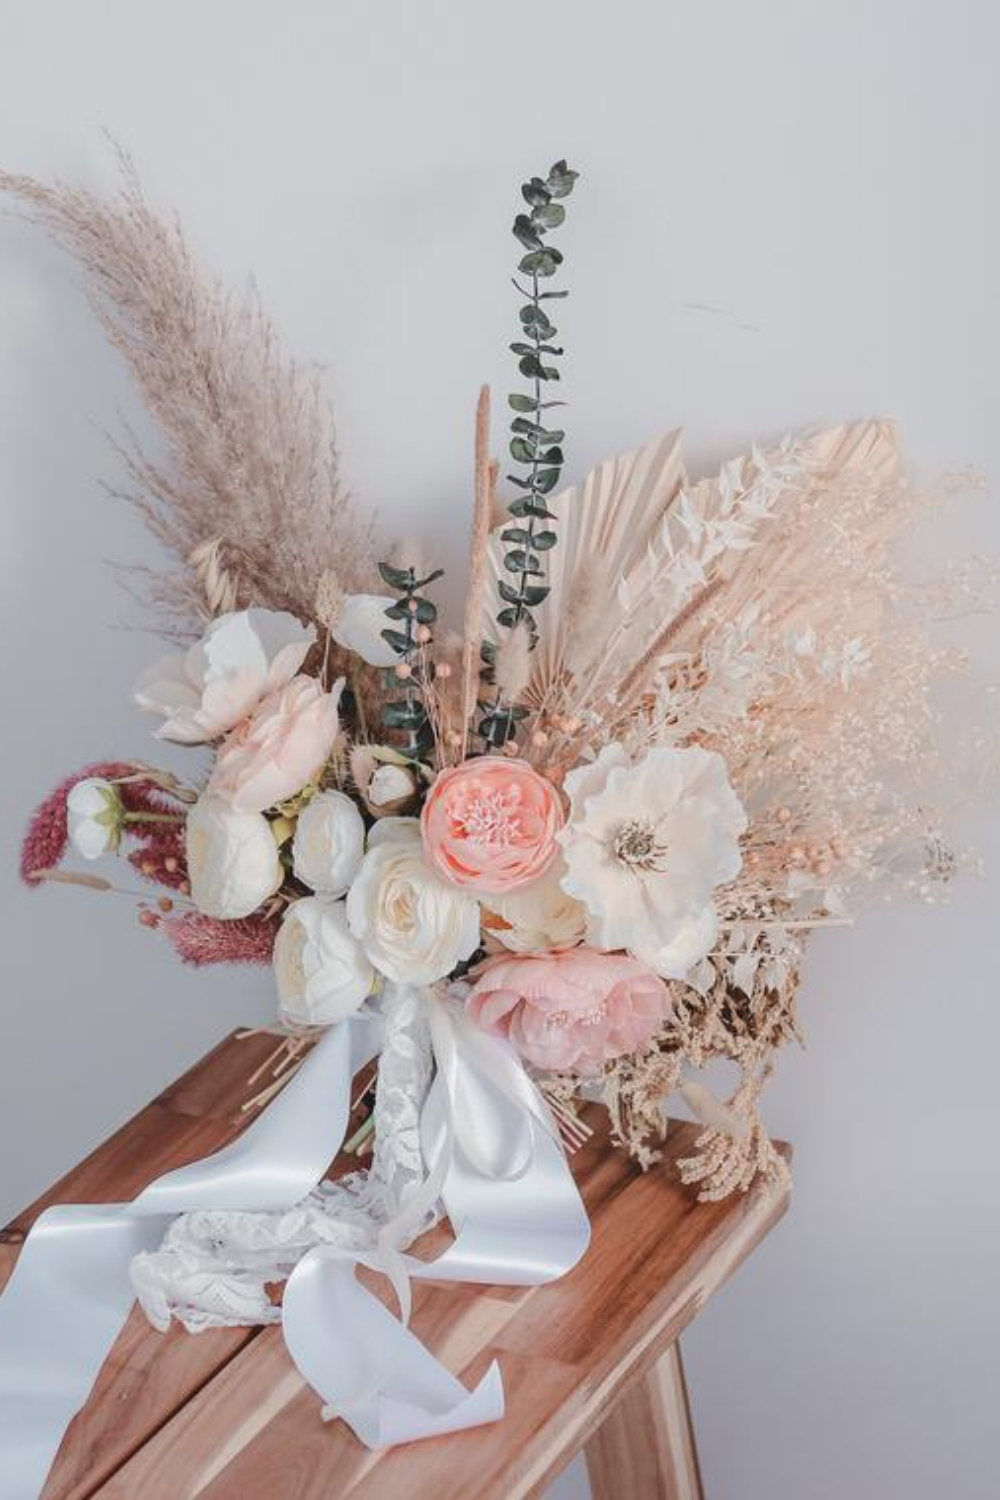 15 Exquisite Blush Bridal Bouquets Inspiration And Advice To Plan The Perfect Wedding